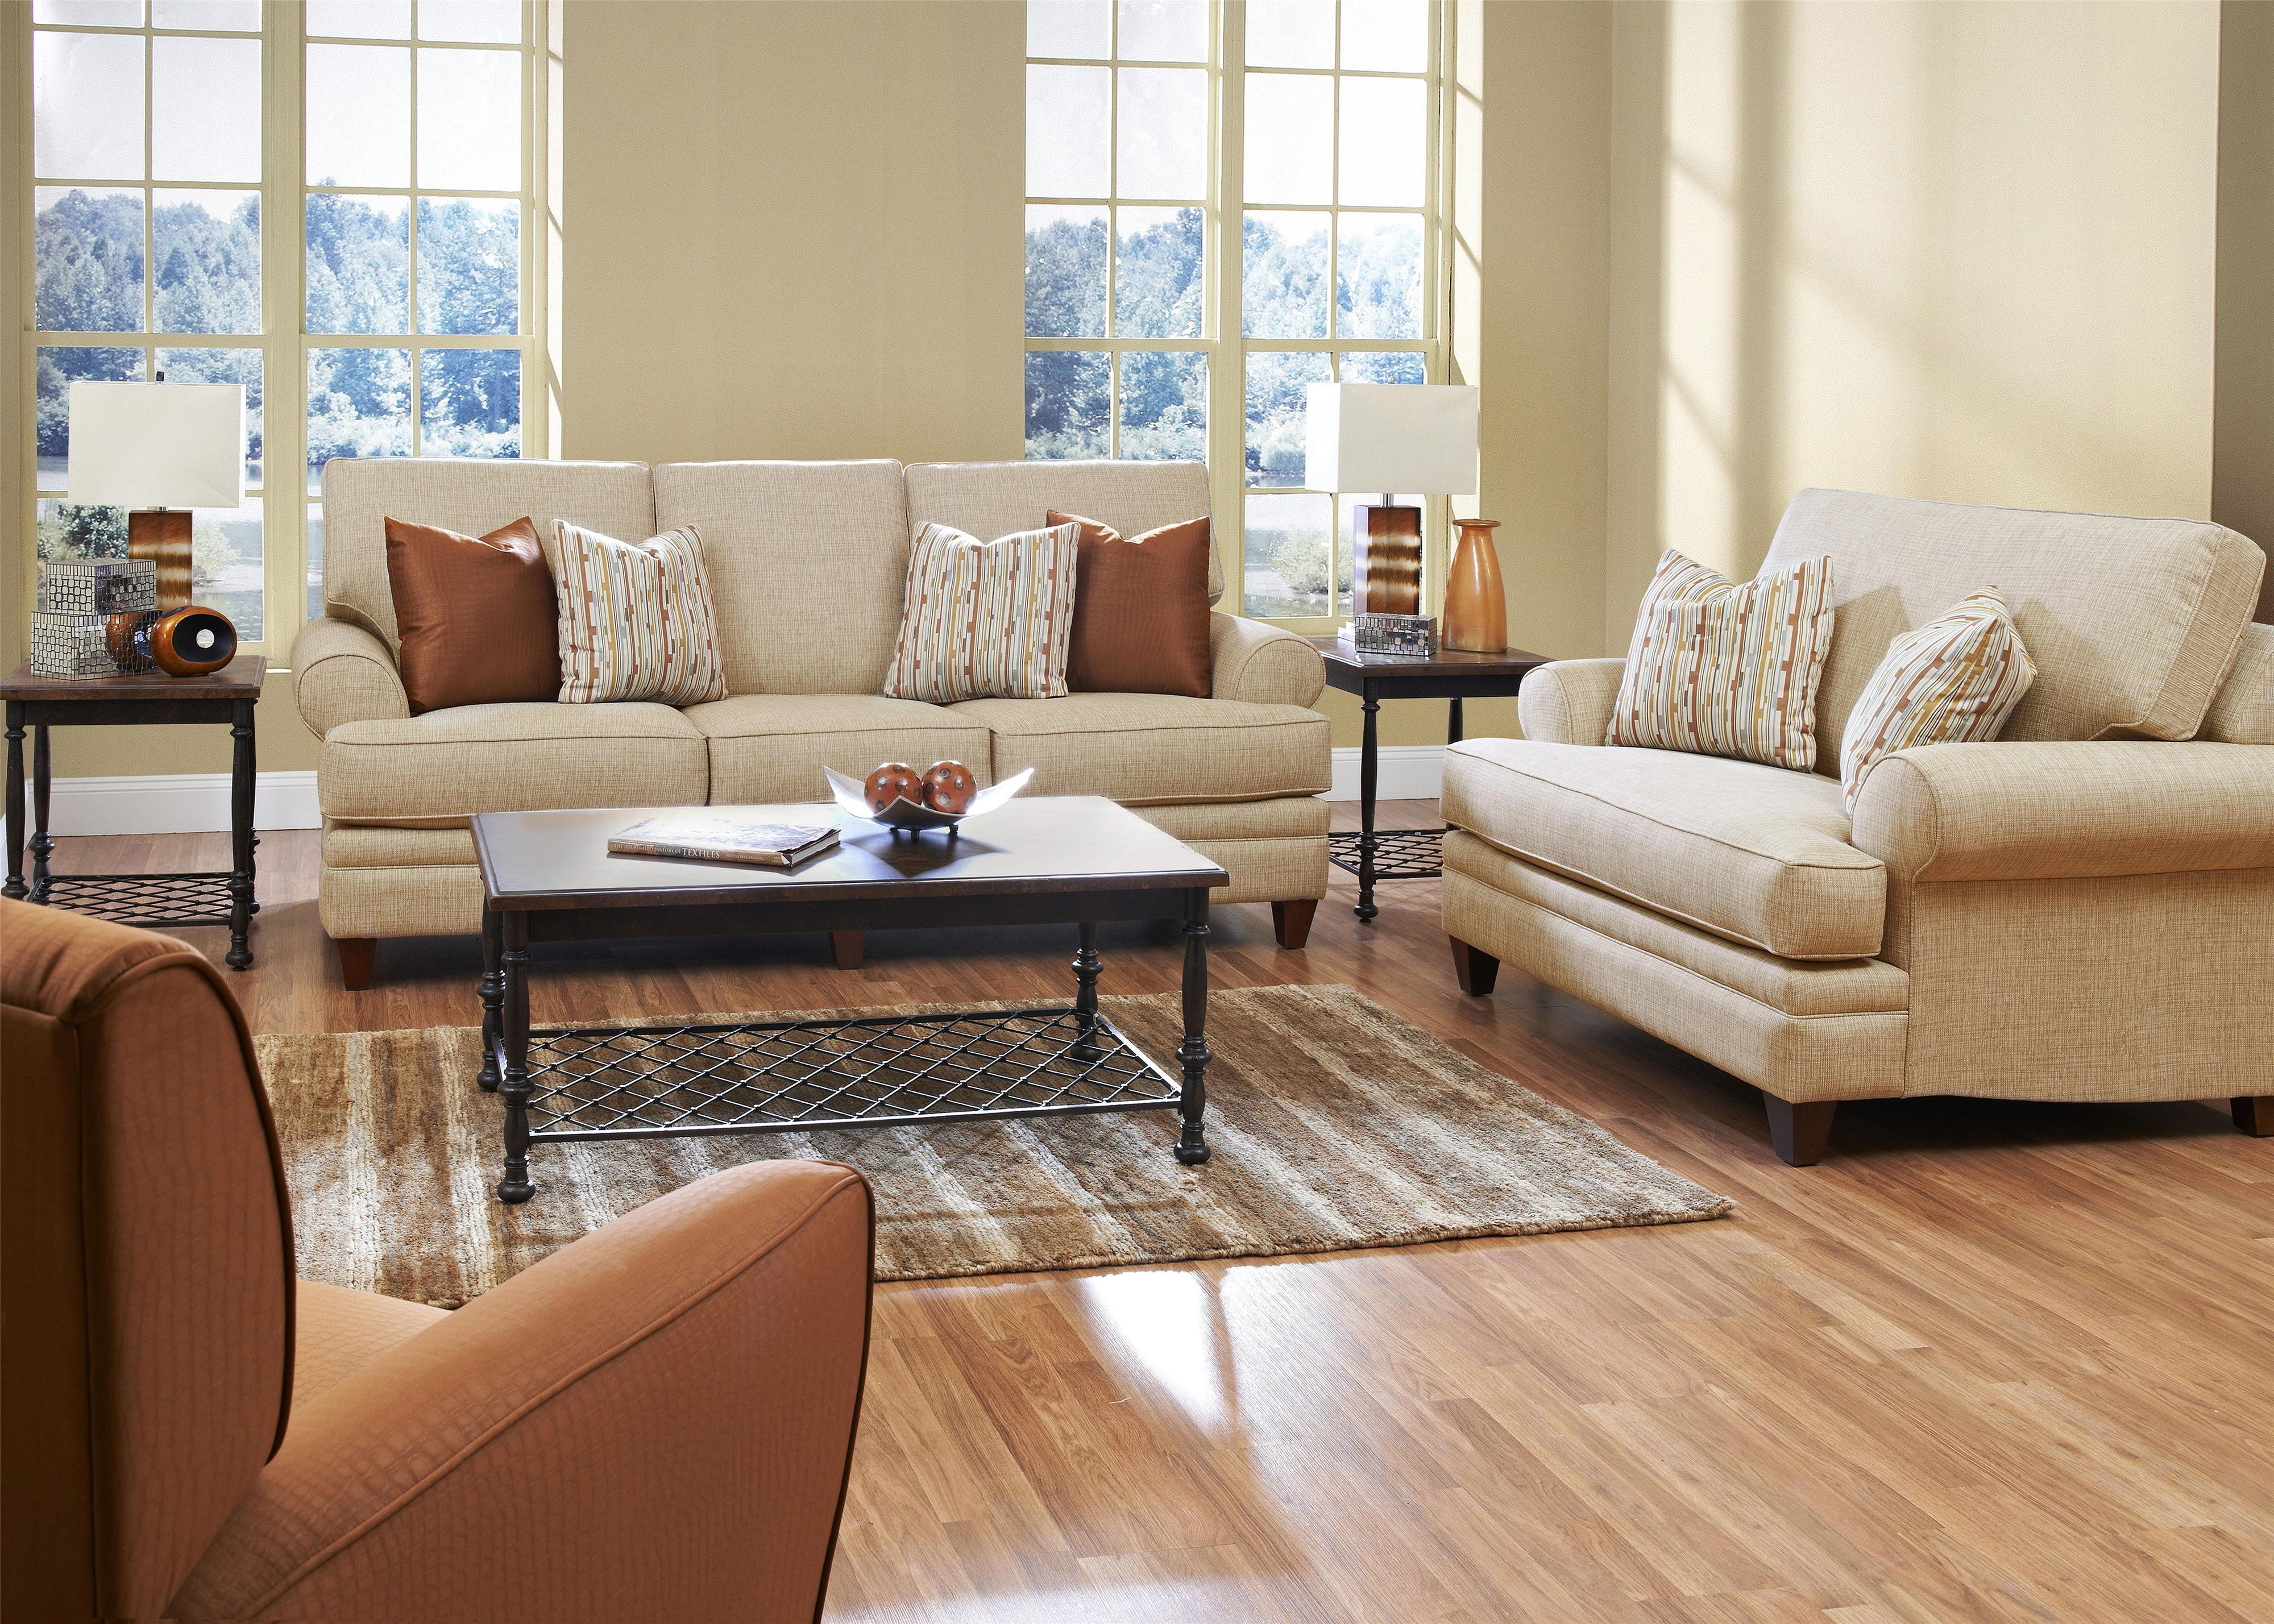 Klaussner Fresno Transitional Sofa with Low Profile Rolled